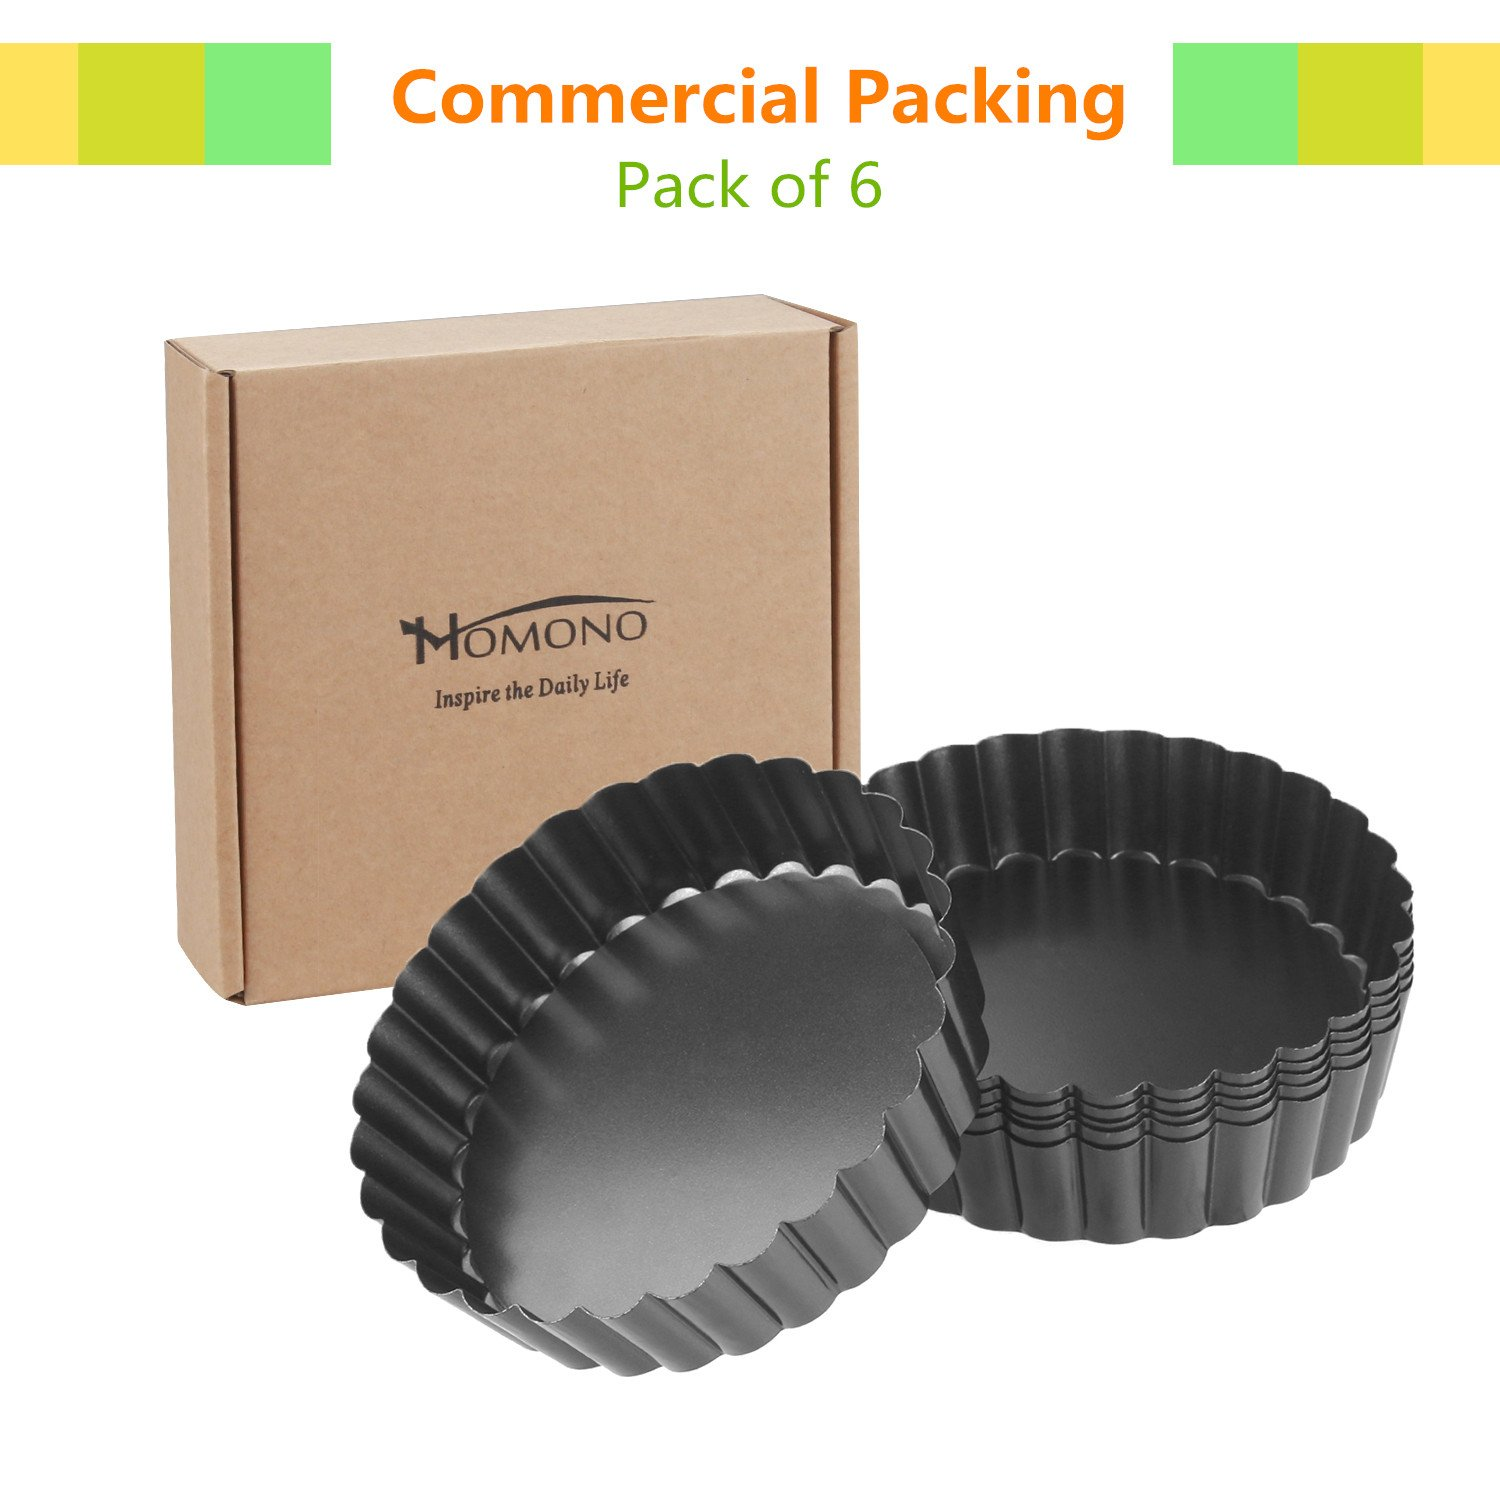 Quiche Pans, Homono Commercial Grade Non Stick Removable Bottom 5 Inch Mini Tart Pans (Pack of 6) by HOMONO (Image #4)